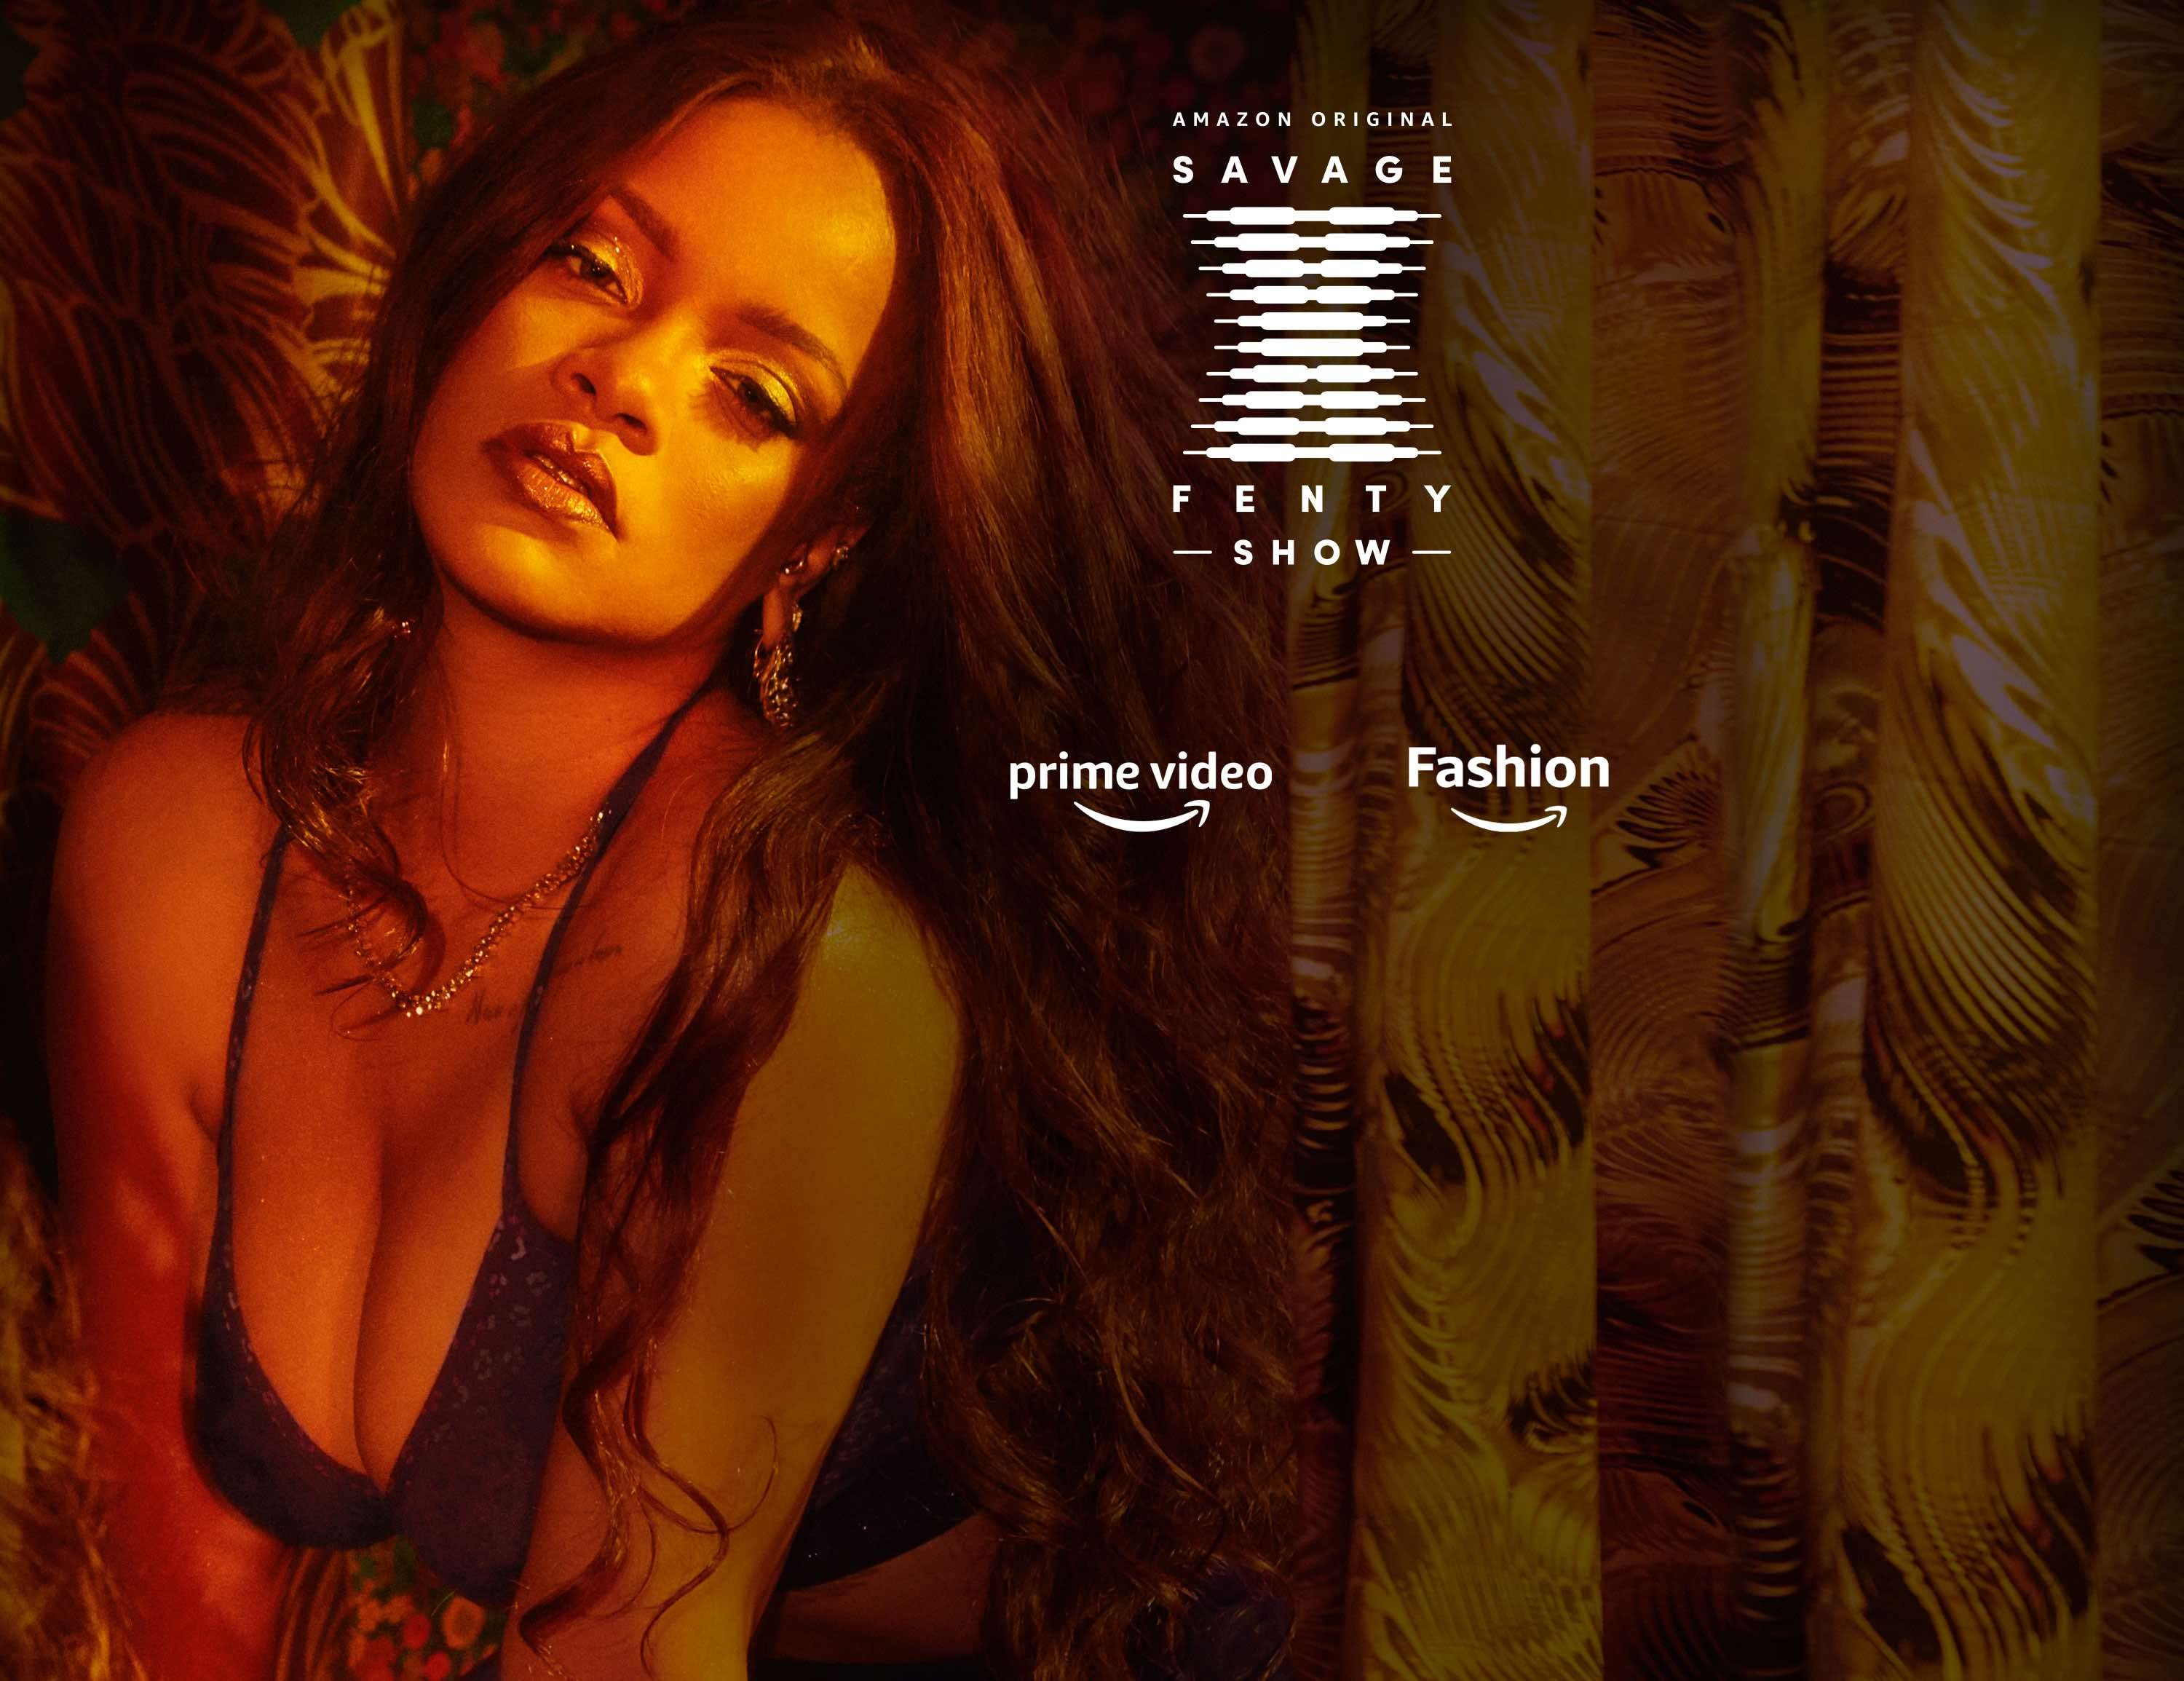 Watch the Savage X Fenty show September 20th on Amazon Prime Video